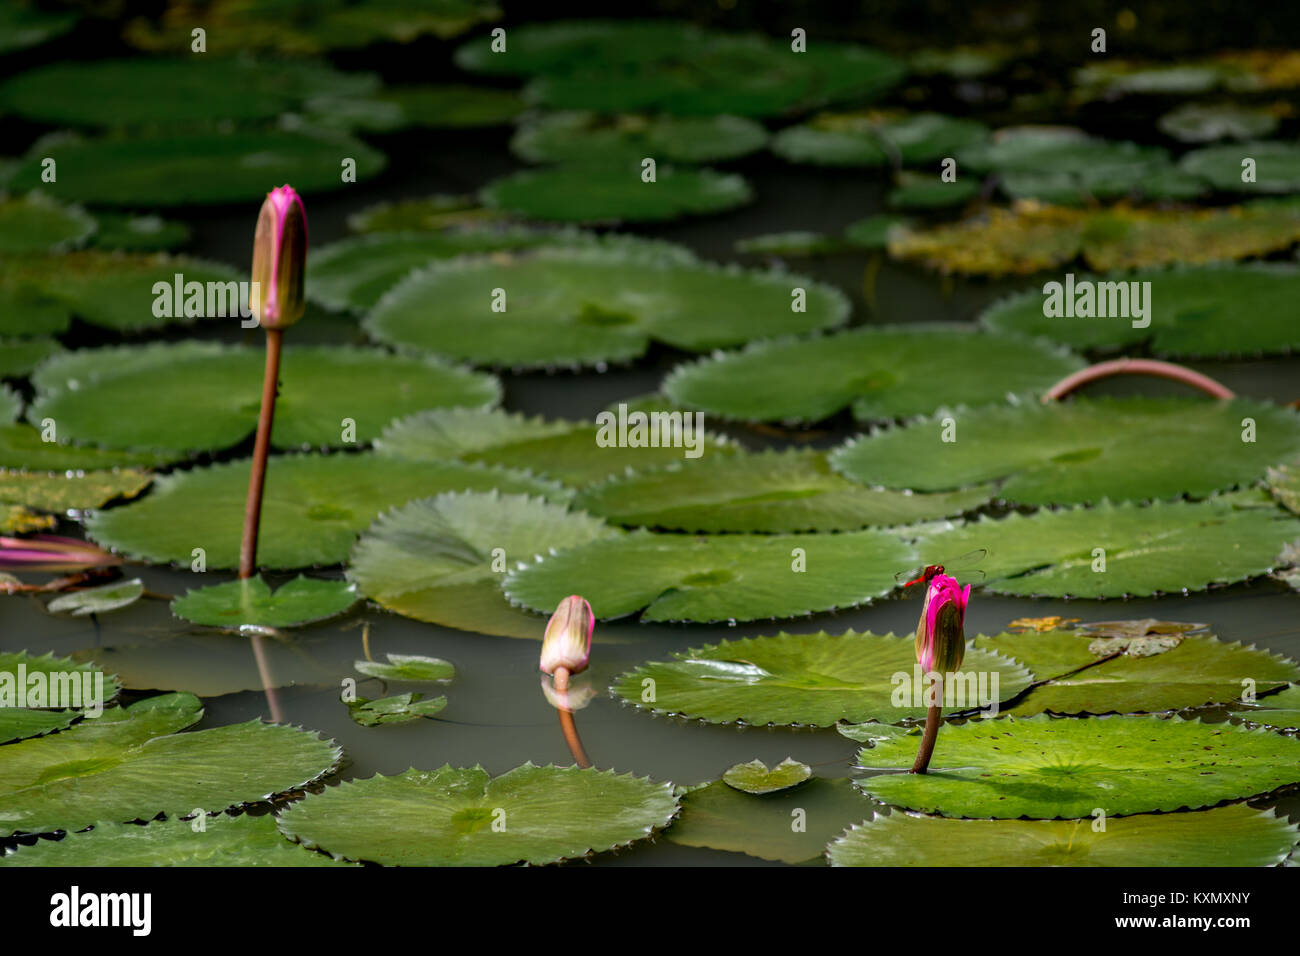 Dragon lily stock photos dragon lily stock images alamy three closed water lily flowers in a lily pond with a red dragon fly landed on izmirmasajfo